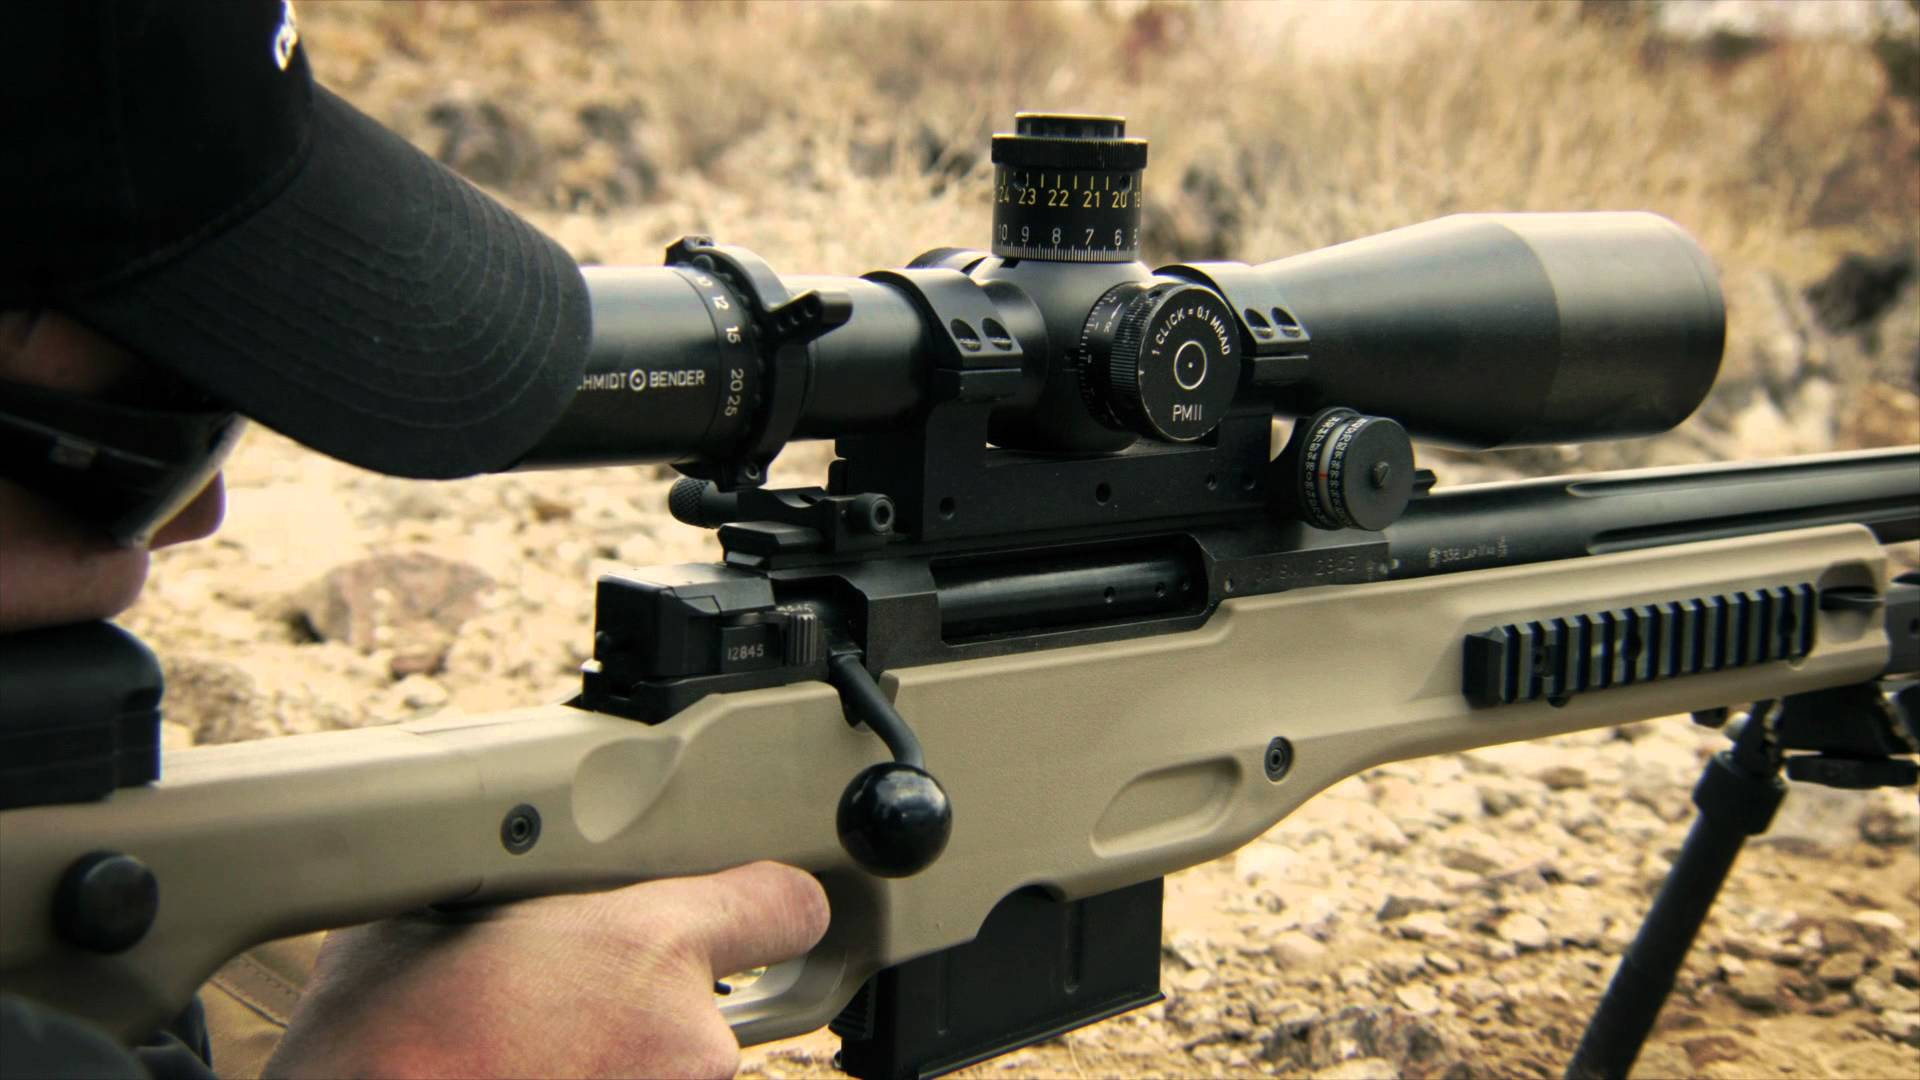 HQ Accuracy International Aw 338 Sniper Rifle Wallpapers | File 157.78Kb